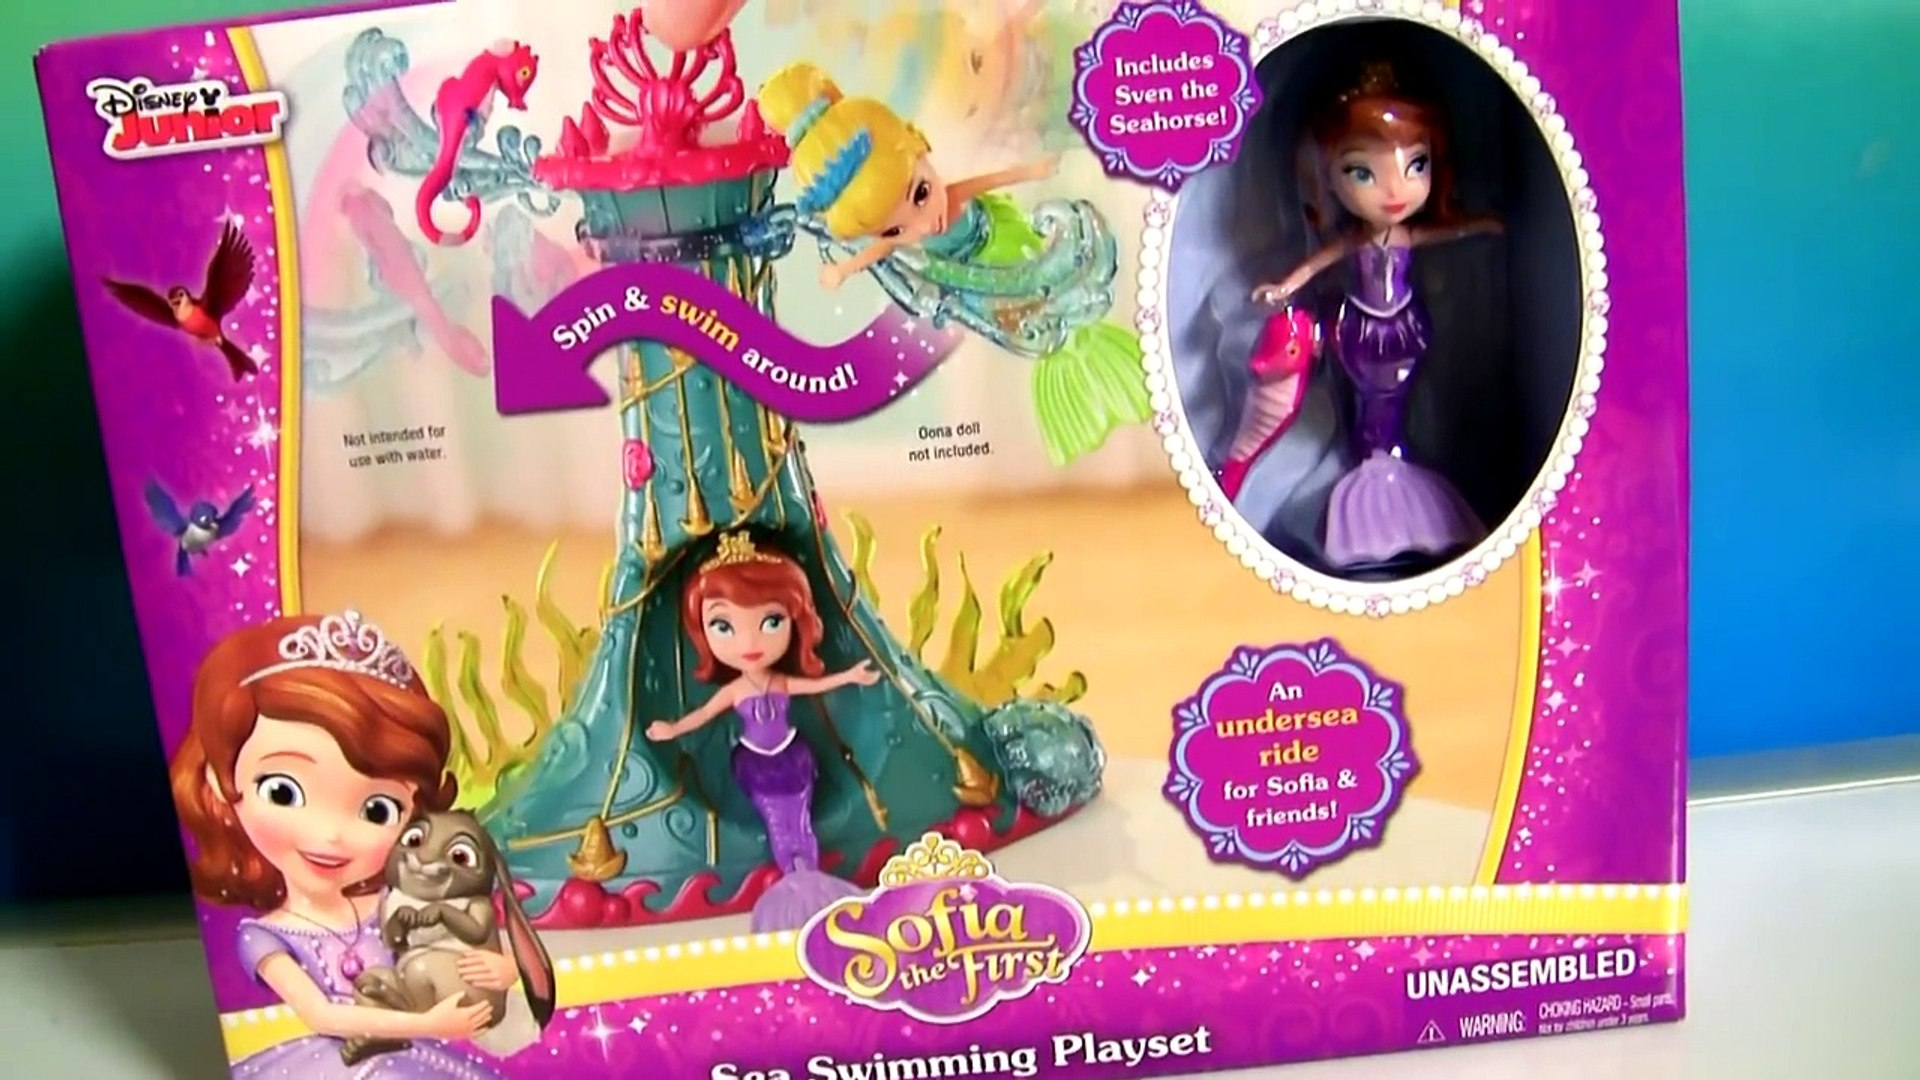 Mermaid Sofia Sea Swimming Playset Disney Princess Sofia the First Unboxing by DisneyCollector